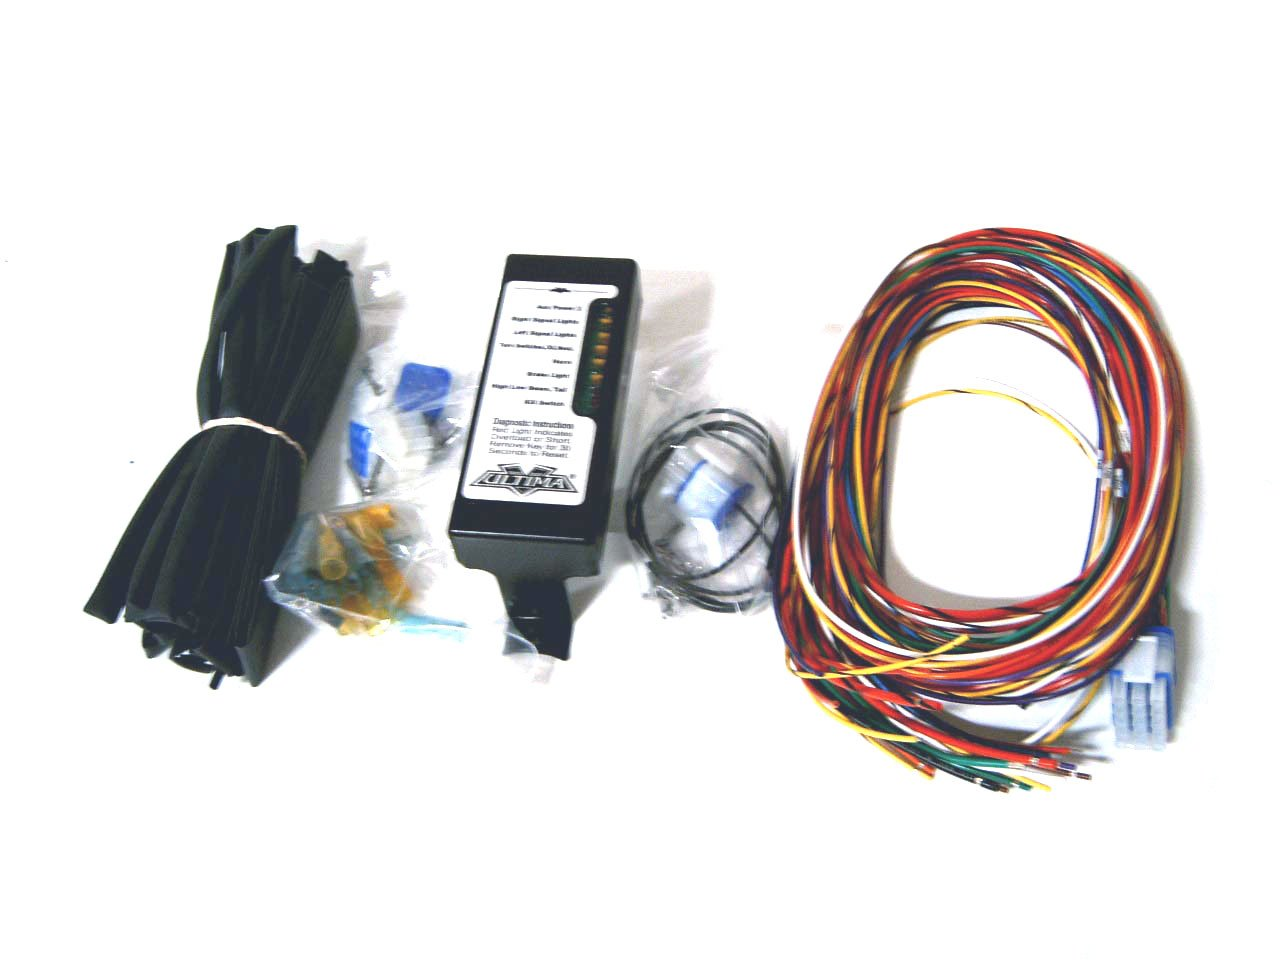 61DV2Bq5%2BHL._SL1280_ amazon com ultima complete wiring harness kit for harley davidson universal wiring harness kits at gsmportal.co